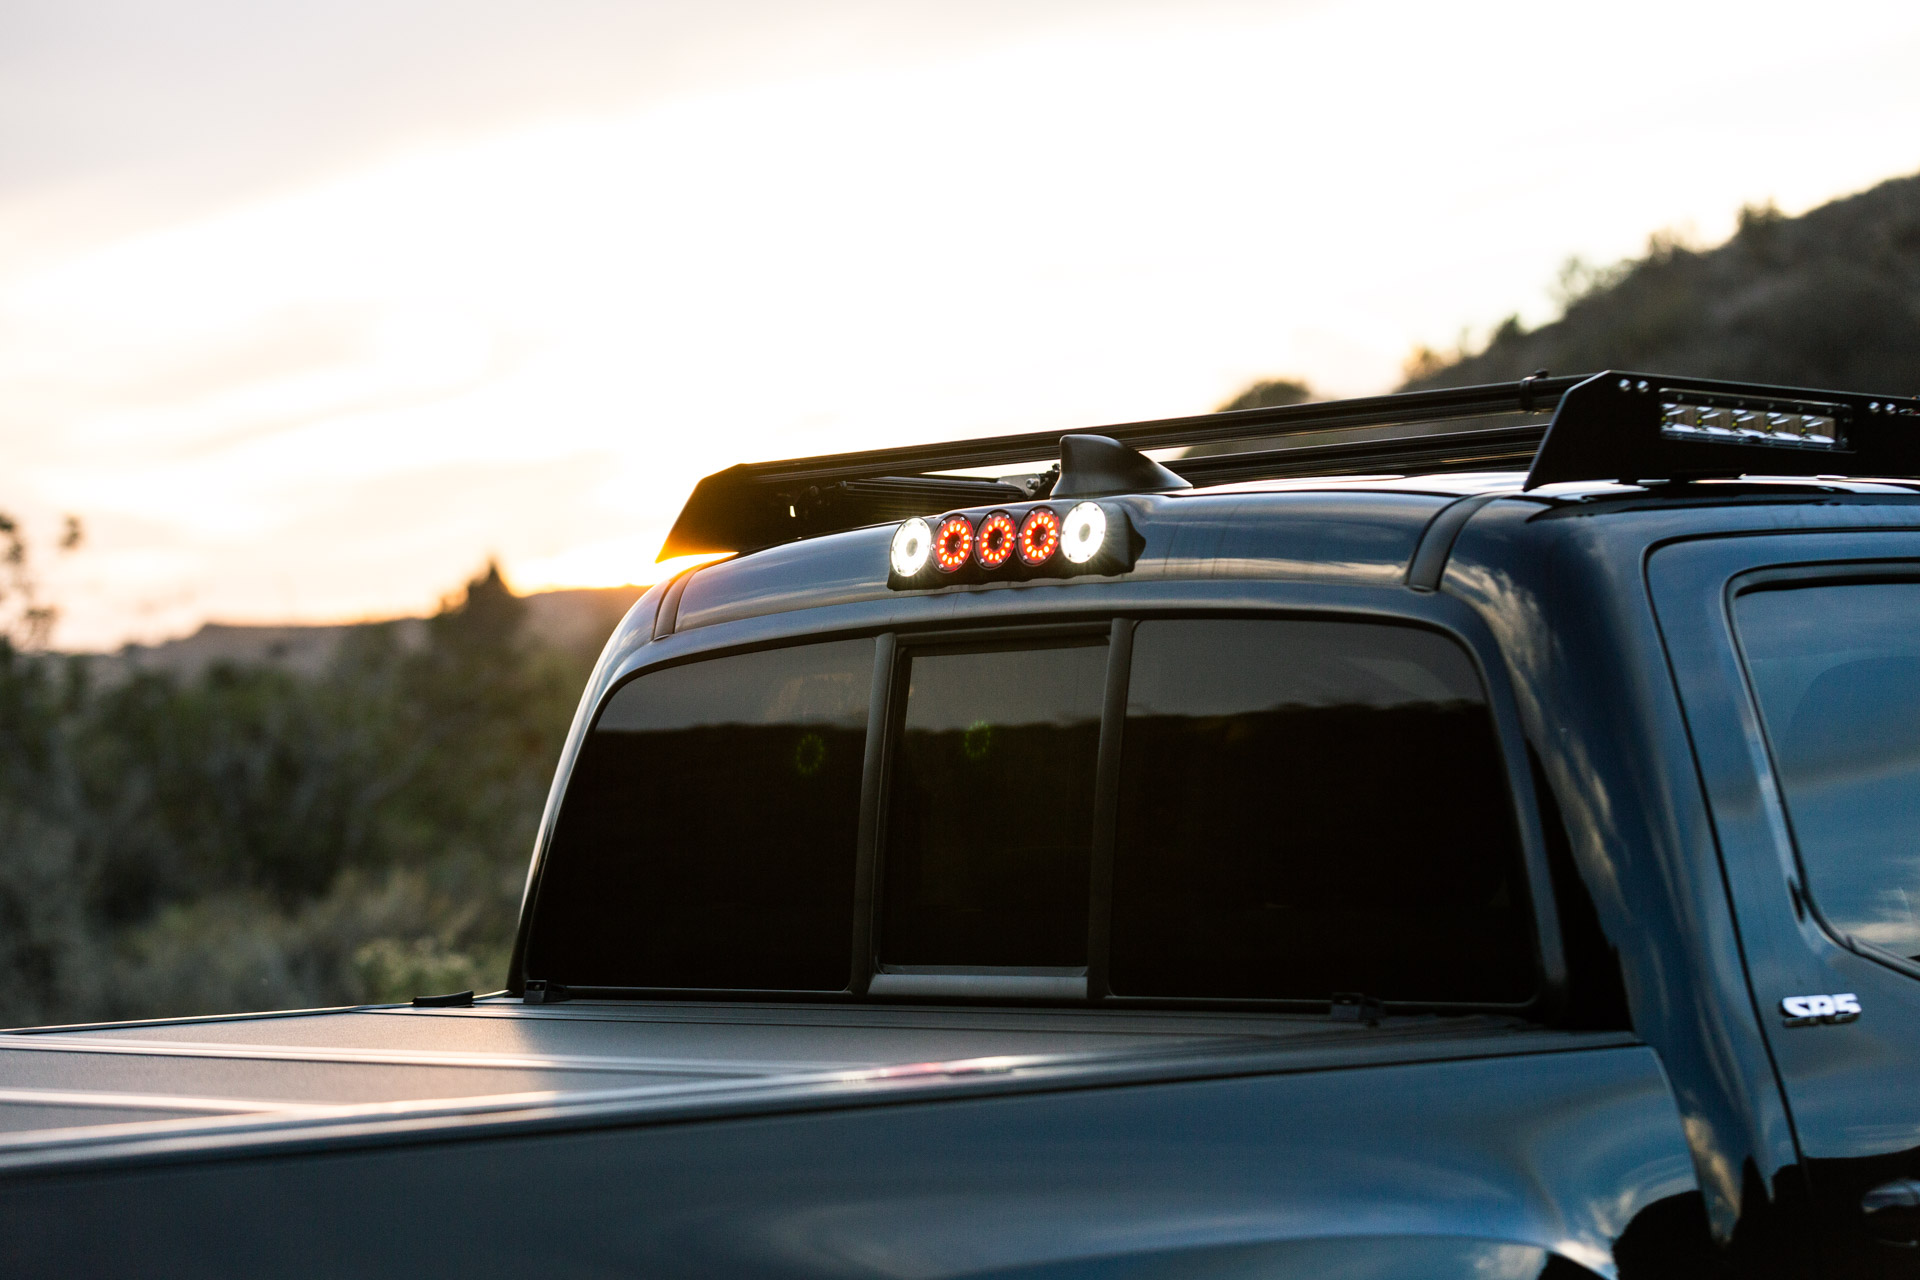 Black KC Toyota Tacoma with Roof Rack & Integrated Lighting - Image #03